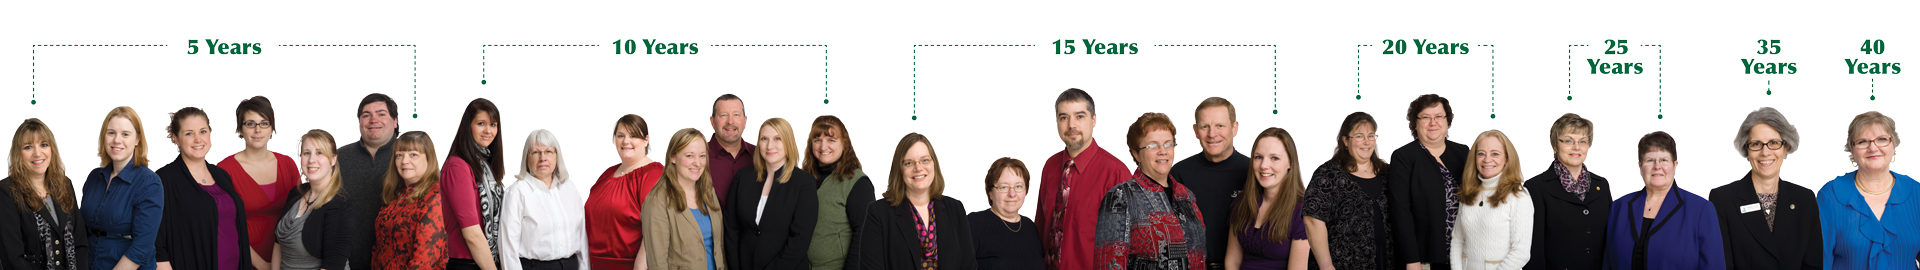 years of service photo showing nearly 30 employees with 5 years to 40 years experience